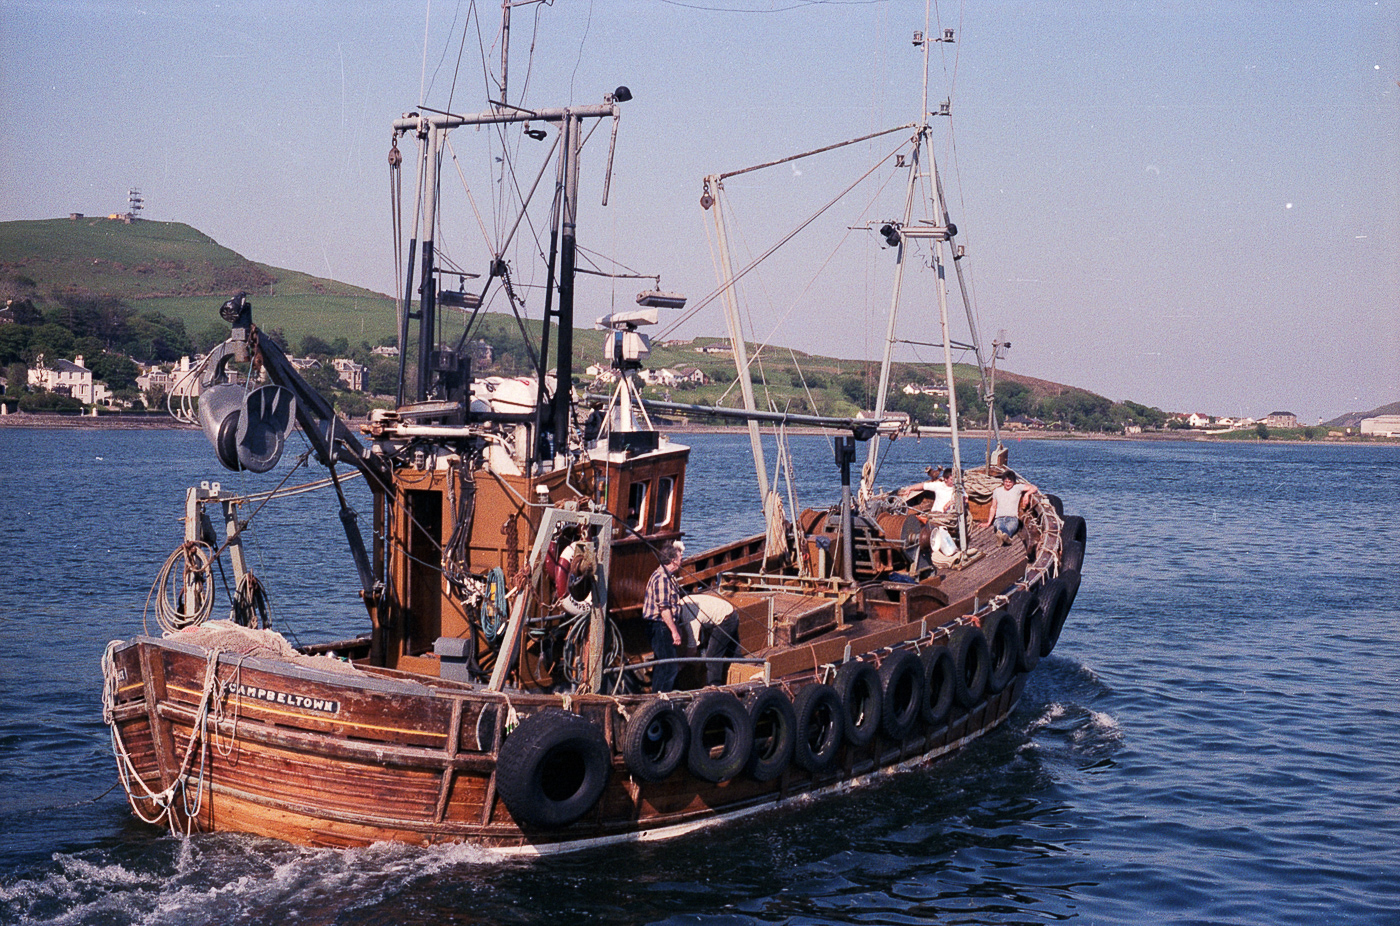 Dual purpose ringnetter and trawler 'Alliance', CN187, at sea, Campbeltown, July 1986. She was built in 1974 in Girvan.